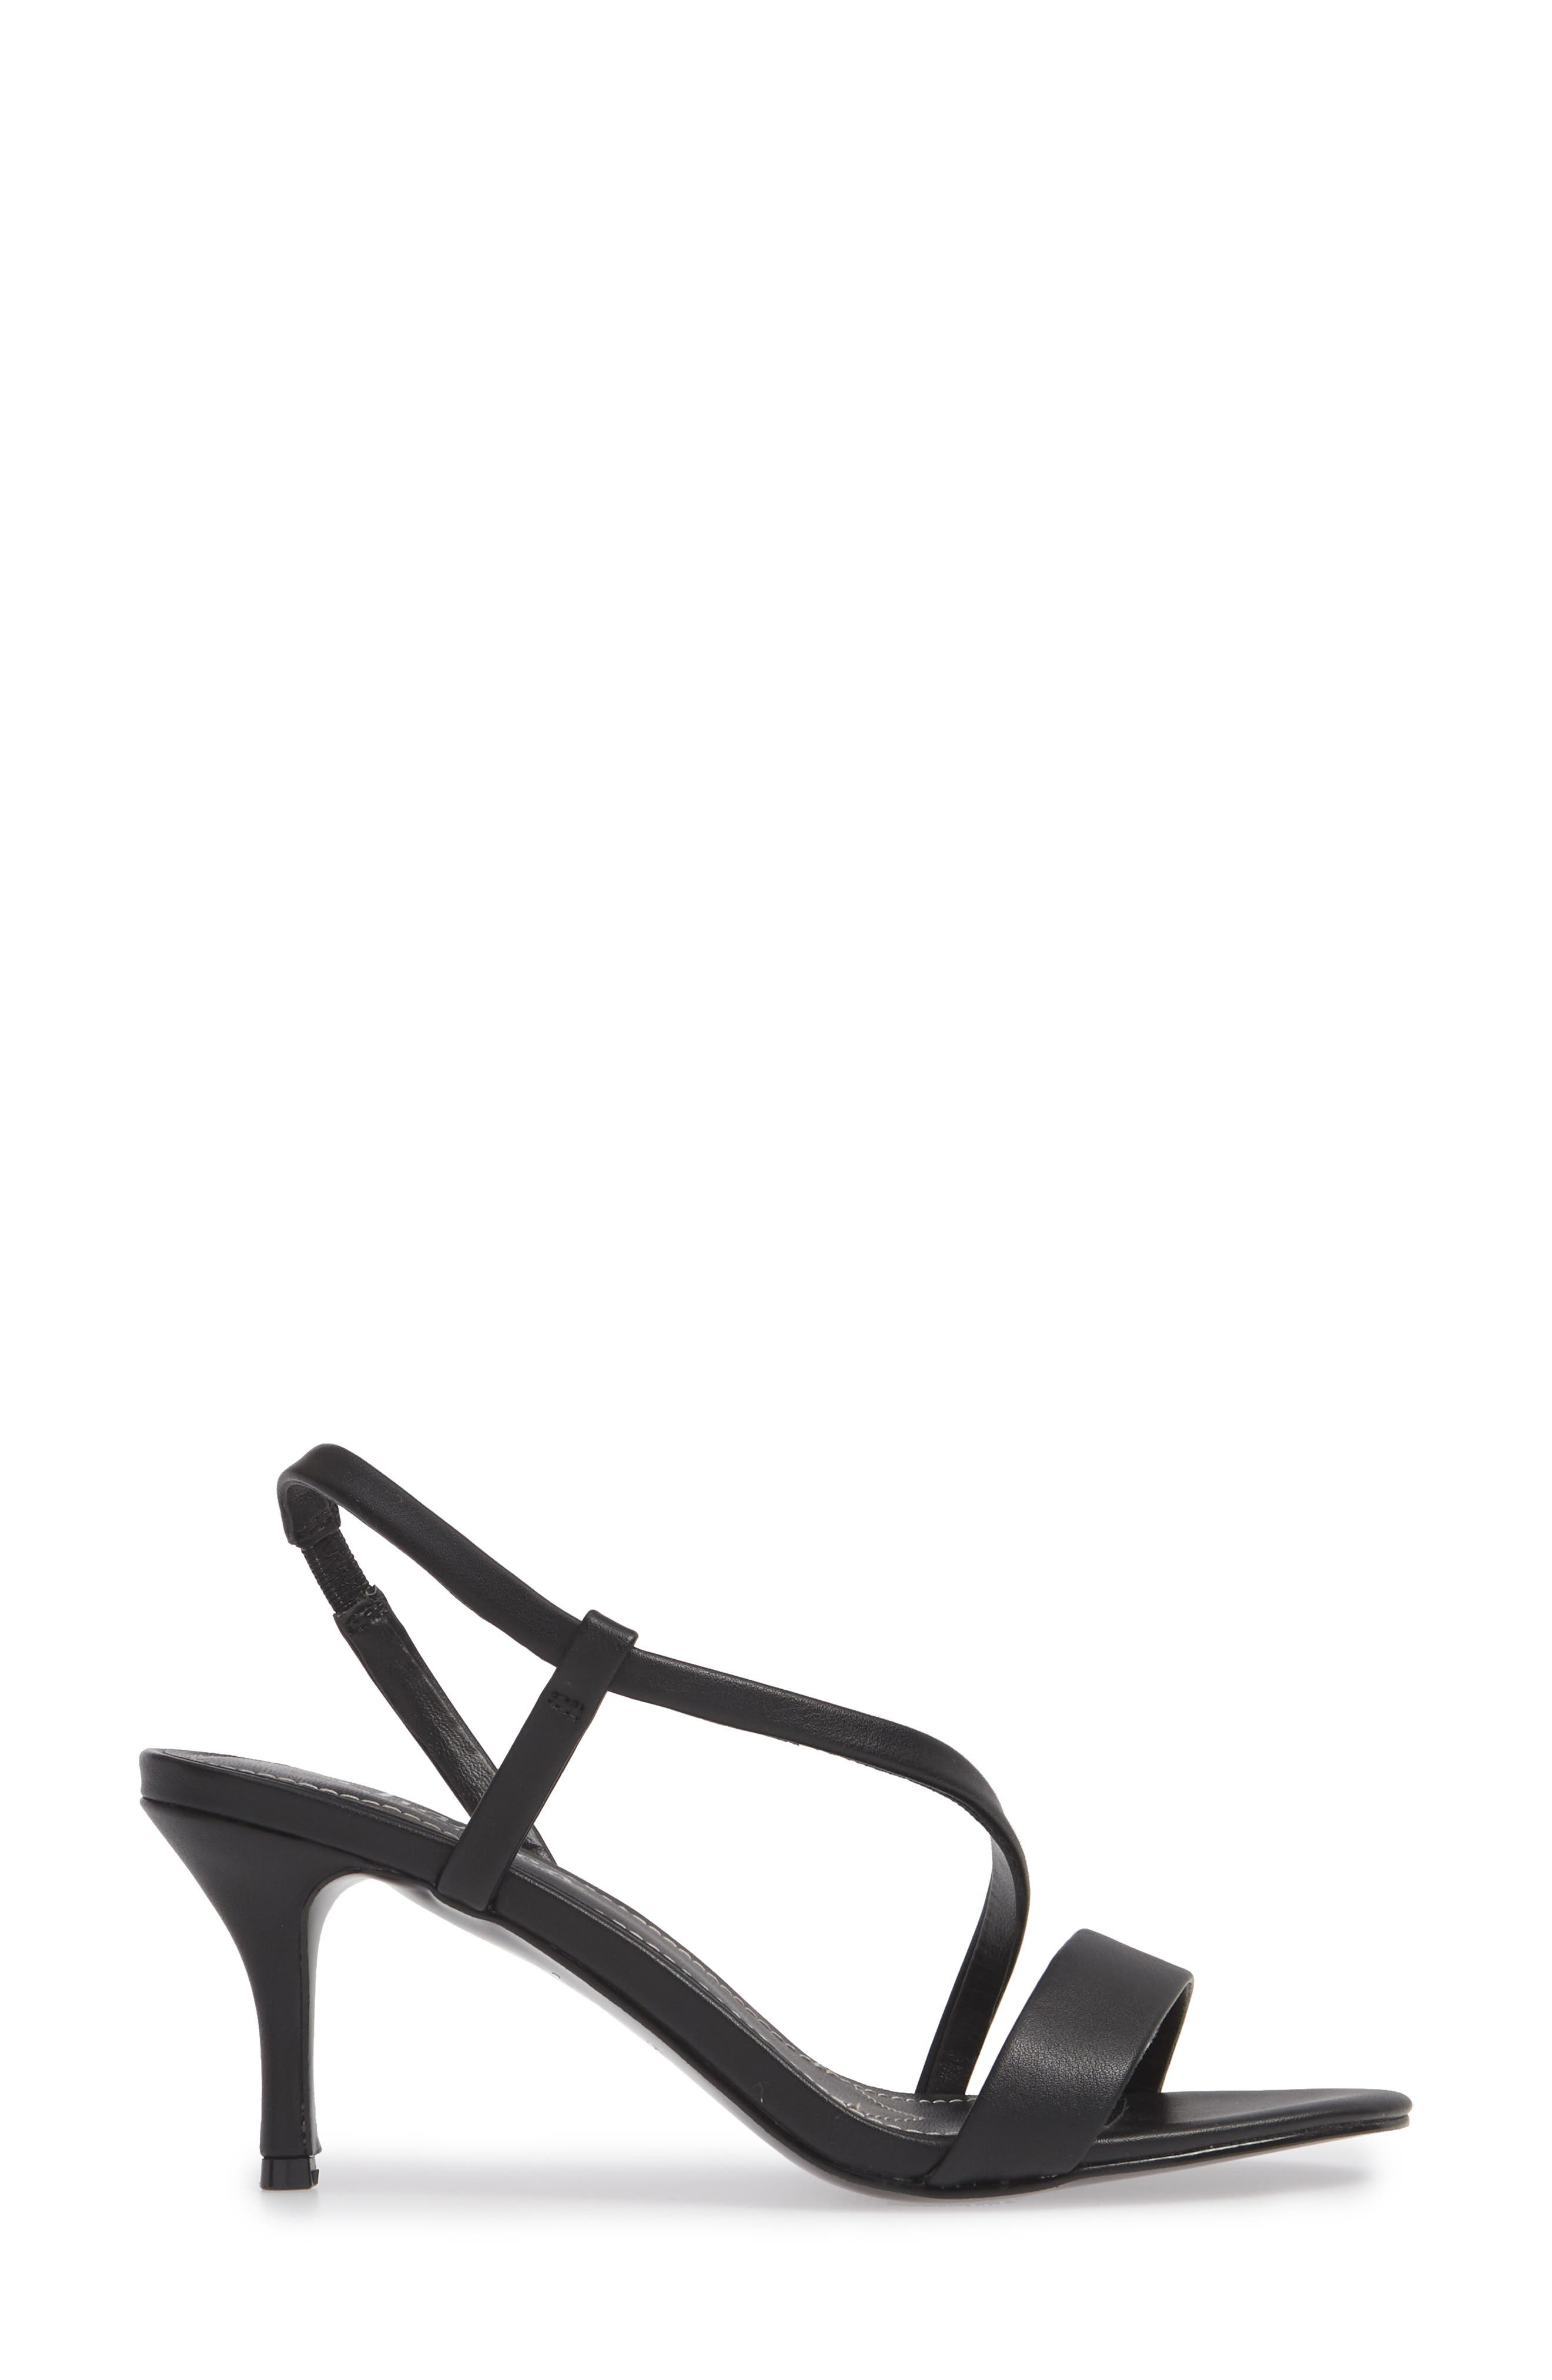 CHARLES BY CHARLES DAVID, Bermuda Asymmetrical Sandal, Alternate thumbnail 3, color, BLACK FAUX LEATHER